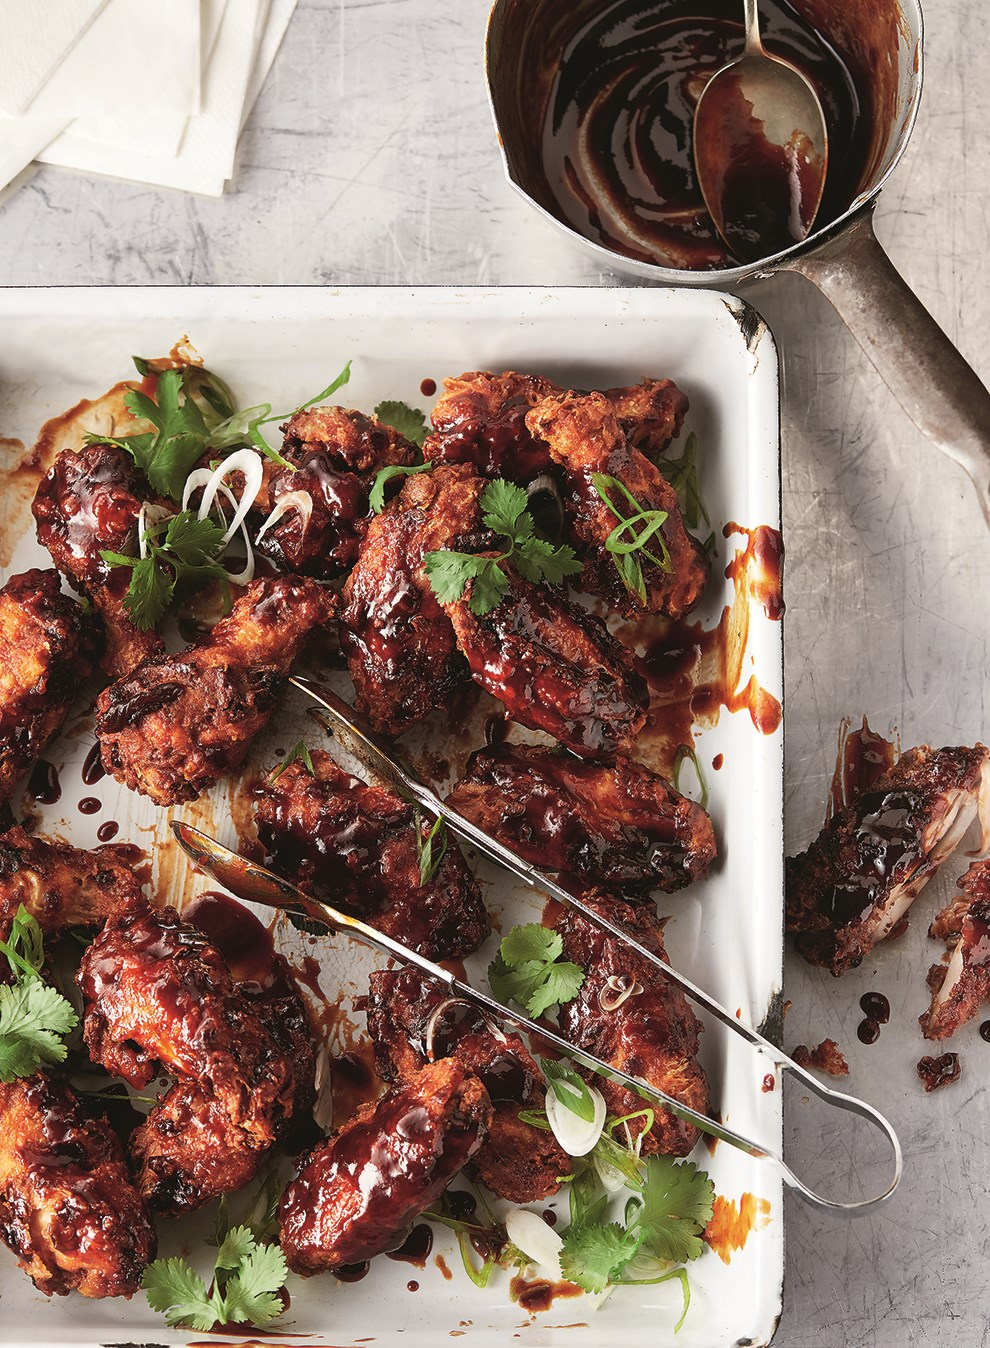 Chicken wings with tamarind